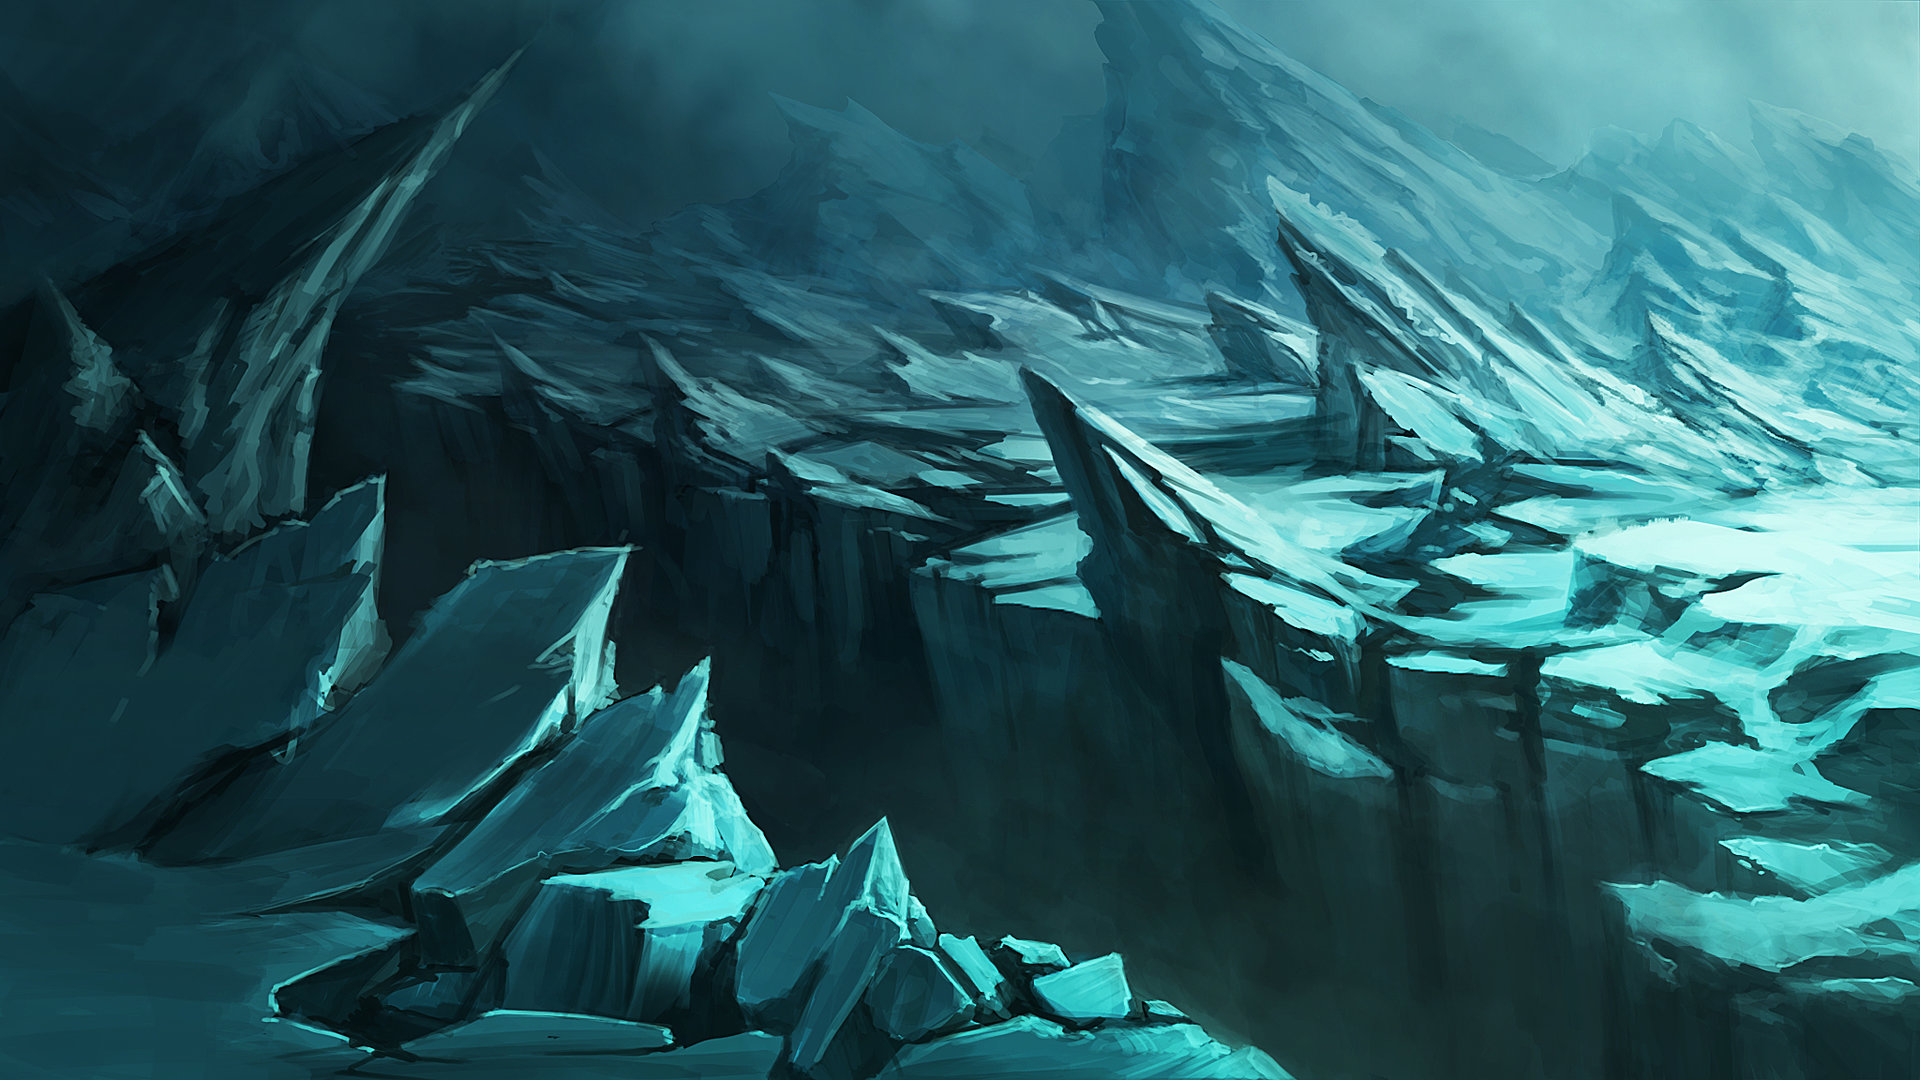 Quentin ghion ice landscape